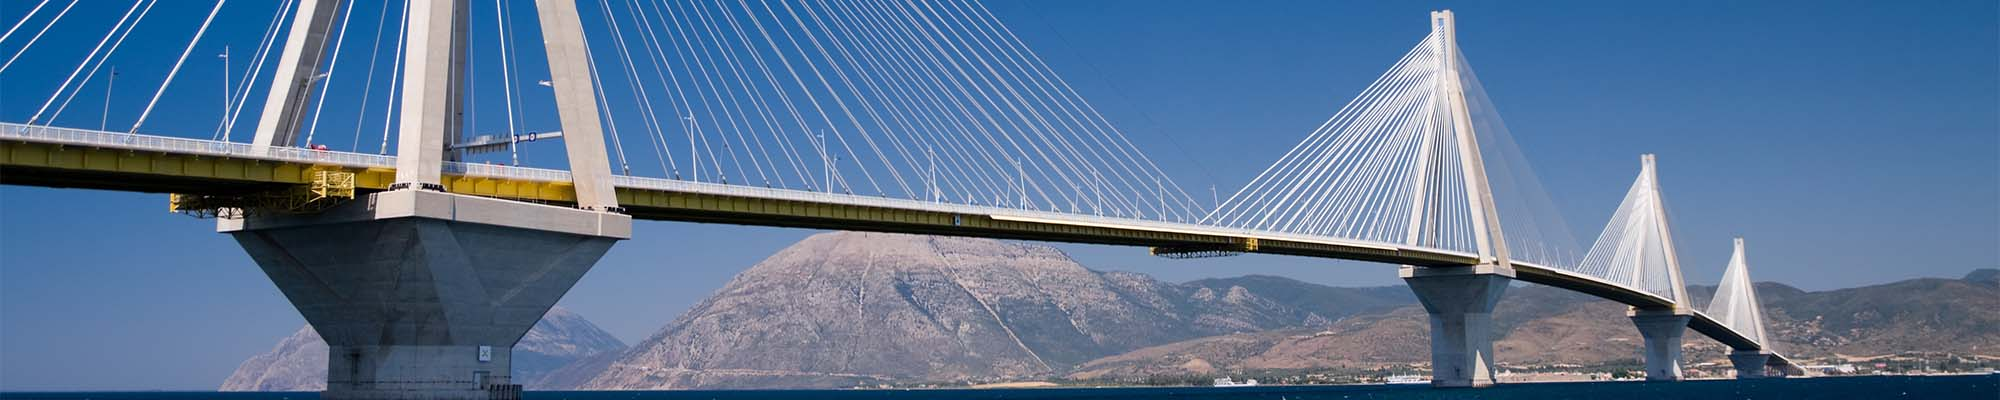 Large Bridge above water - Structural Market Sector